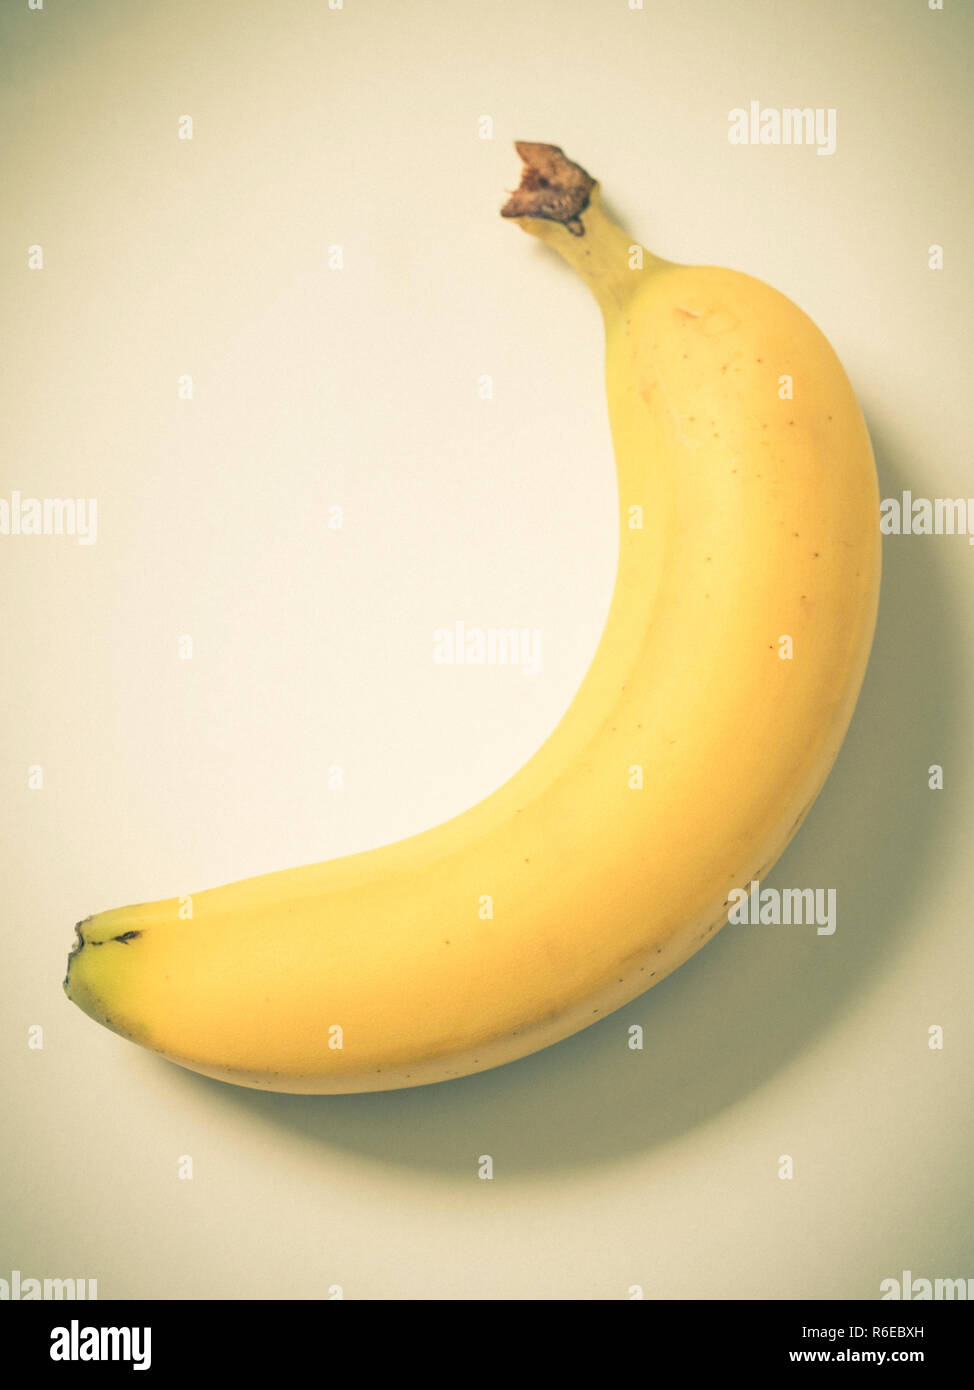 Close up of banana on plate with vignette and desaturated colour - Stock Image